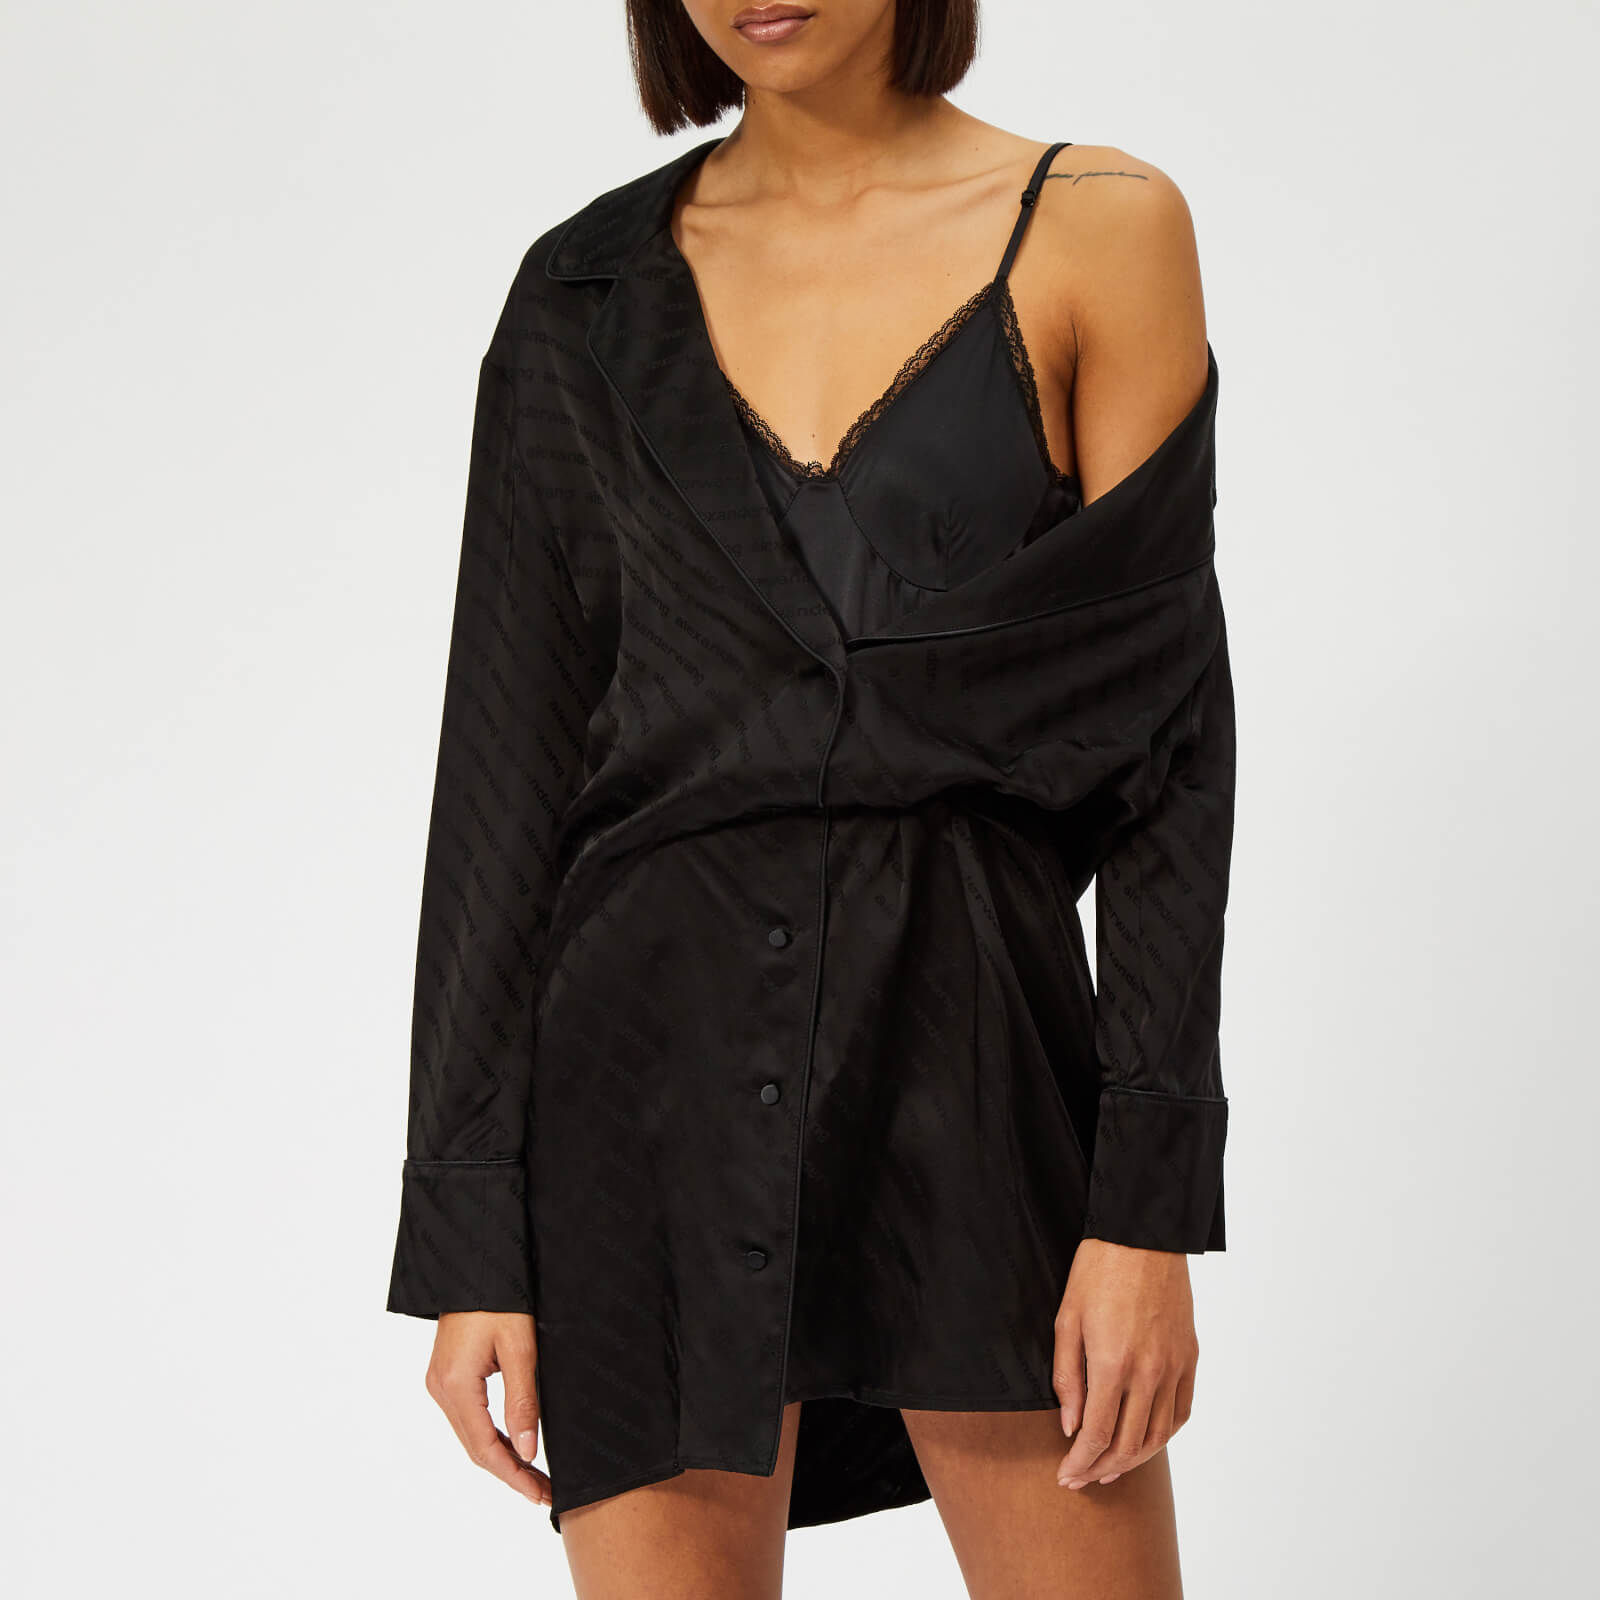 035400dcdc9 Alexander Wang Women s Shirt Dress with Exposed Lace Cami - Black ...